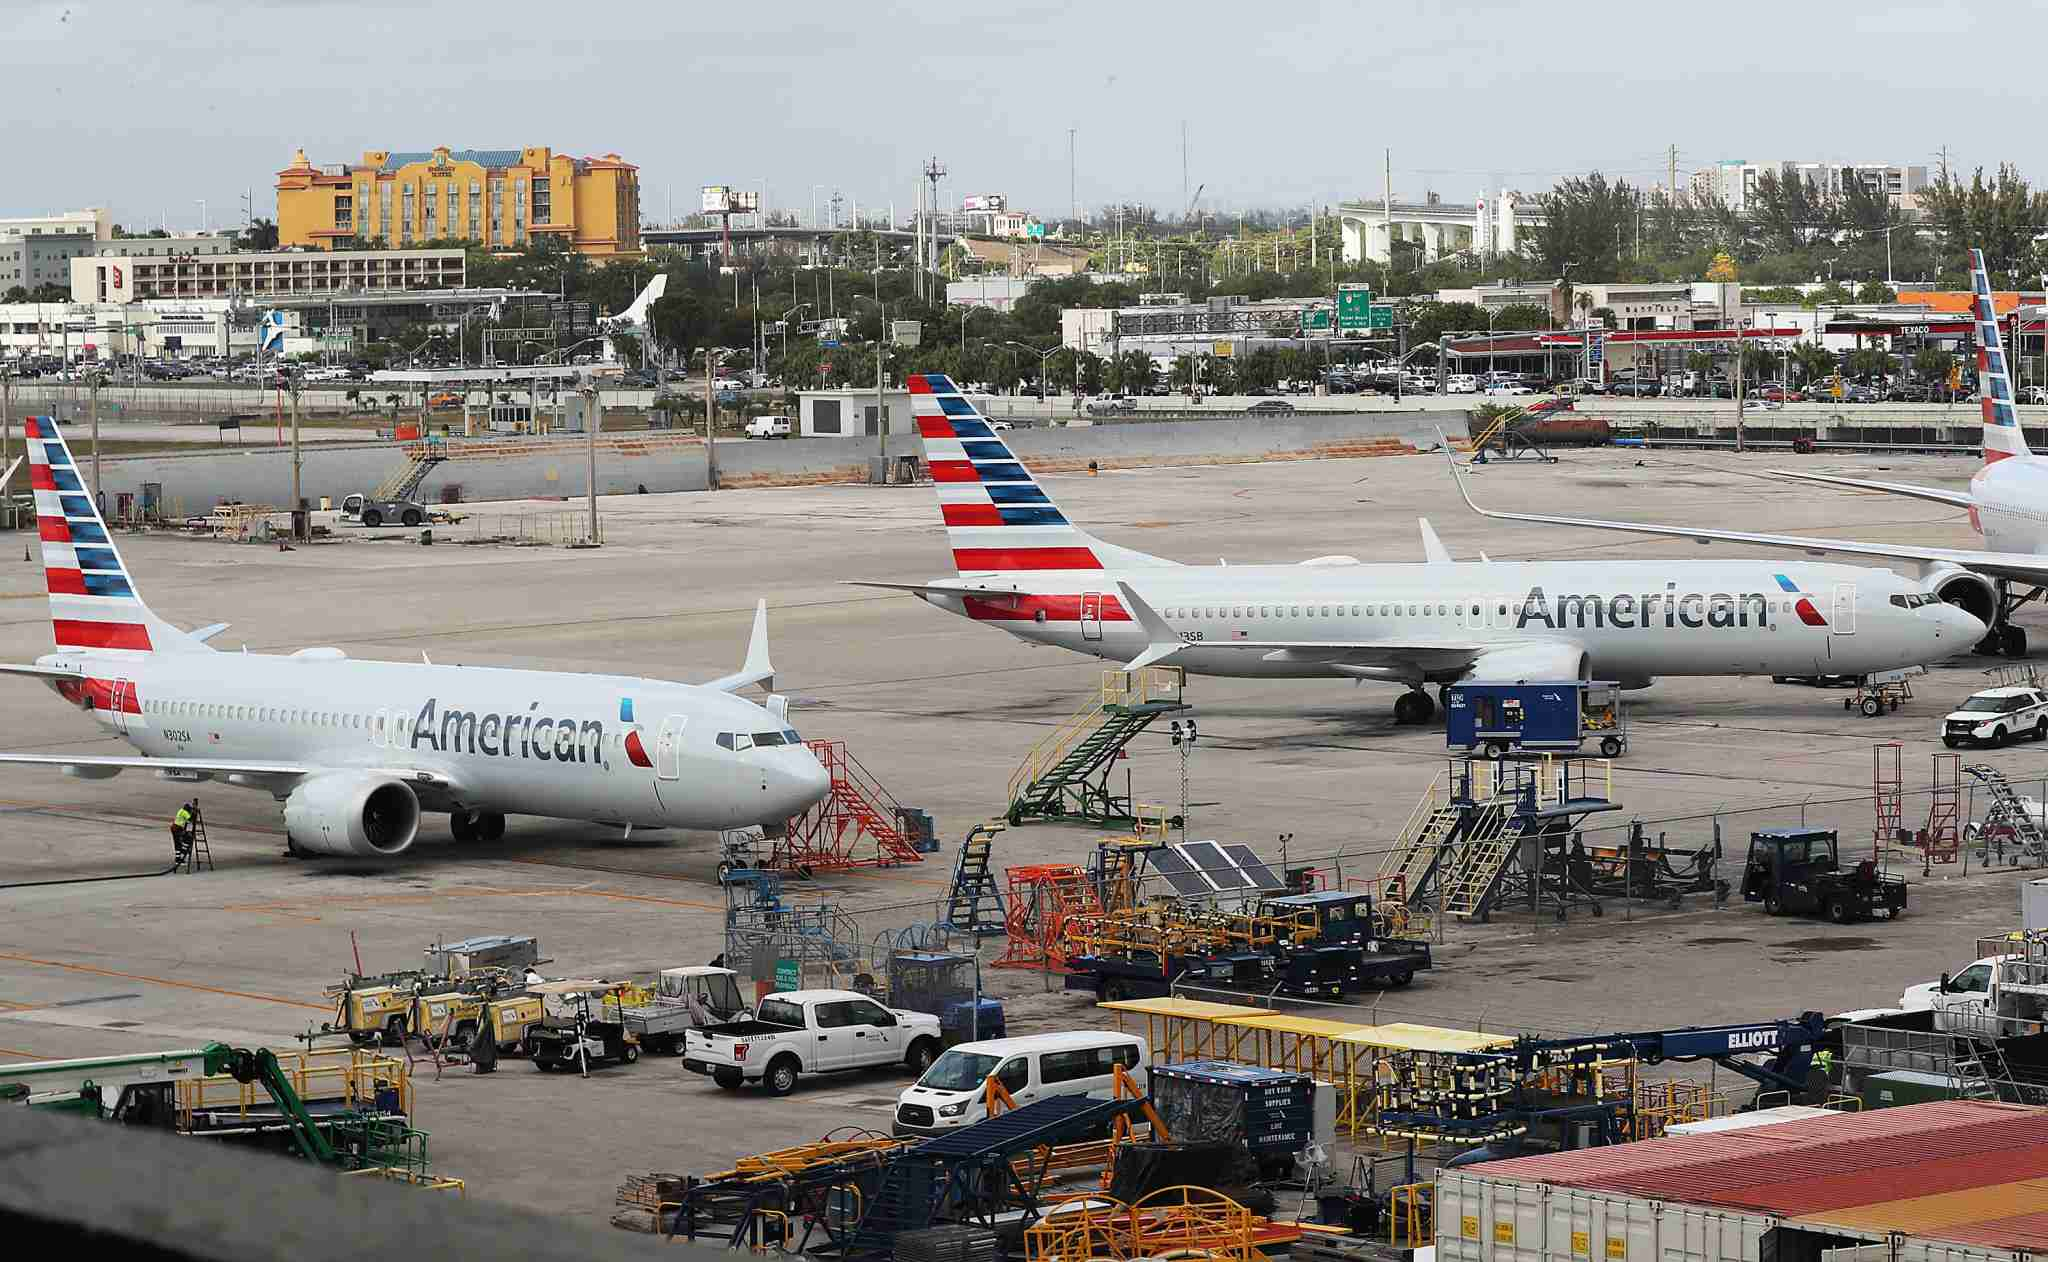 MIAMI, FL - MARCH 14: Two grounded American Airlines Boeing 737 Max 8 are seen parked at Miami International Airport on March 14, 2019 in Miami, Florida. The Federal Aviation Administration grounded the entire United States Boeing 737 Max fleet. (Photo by Joe Raedle/Getty Images)